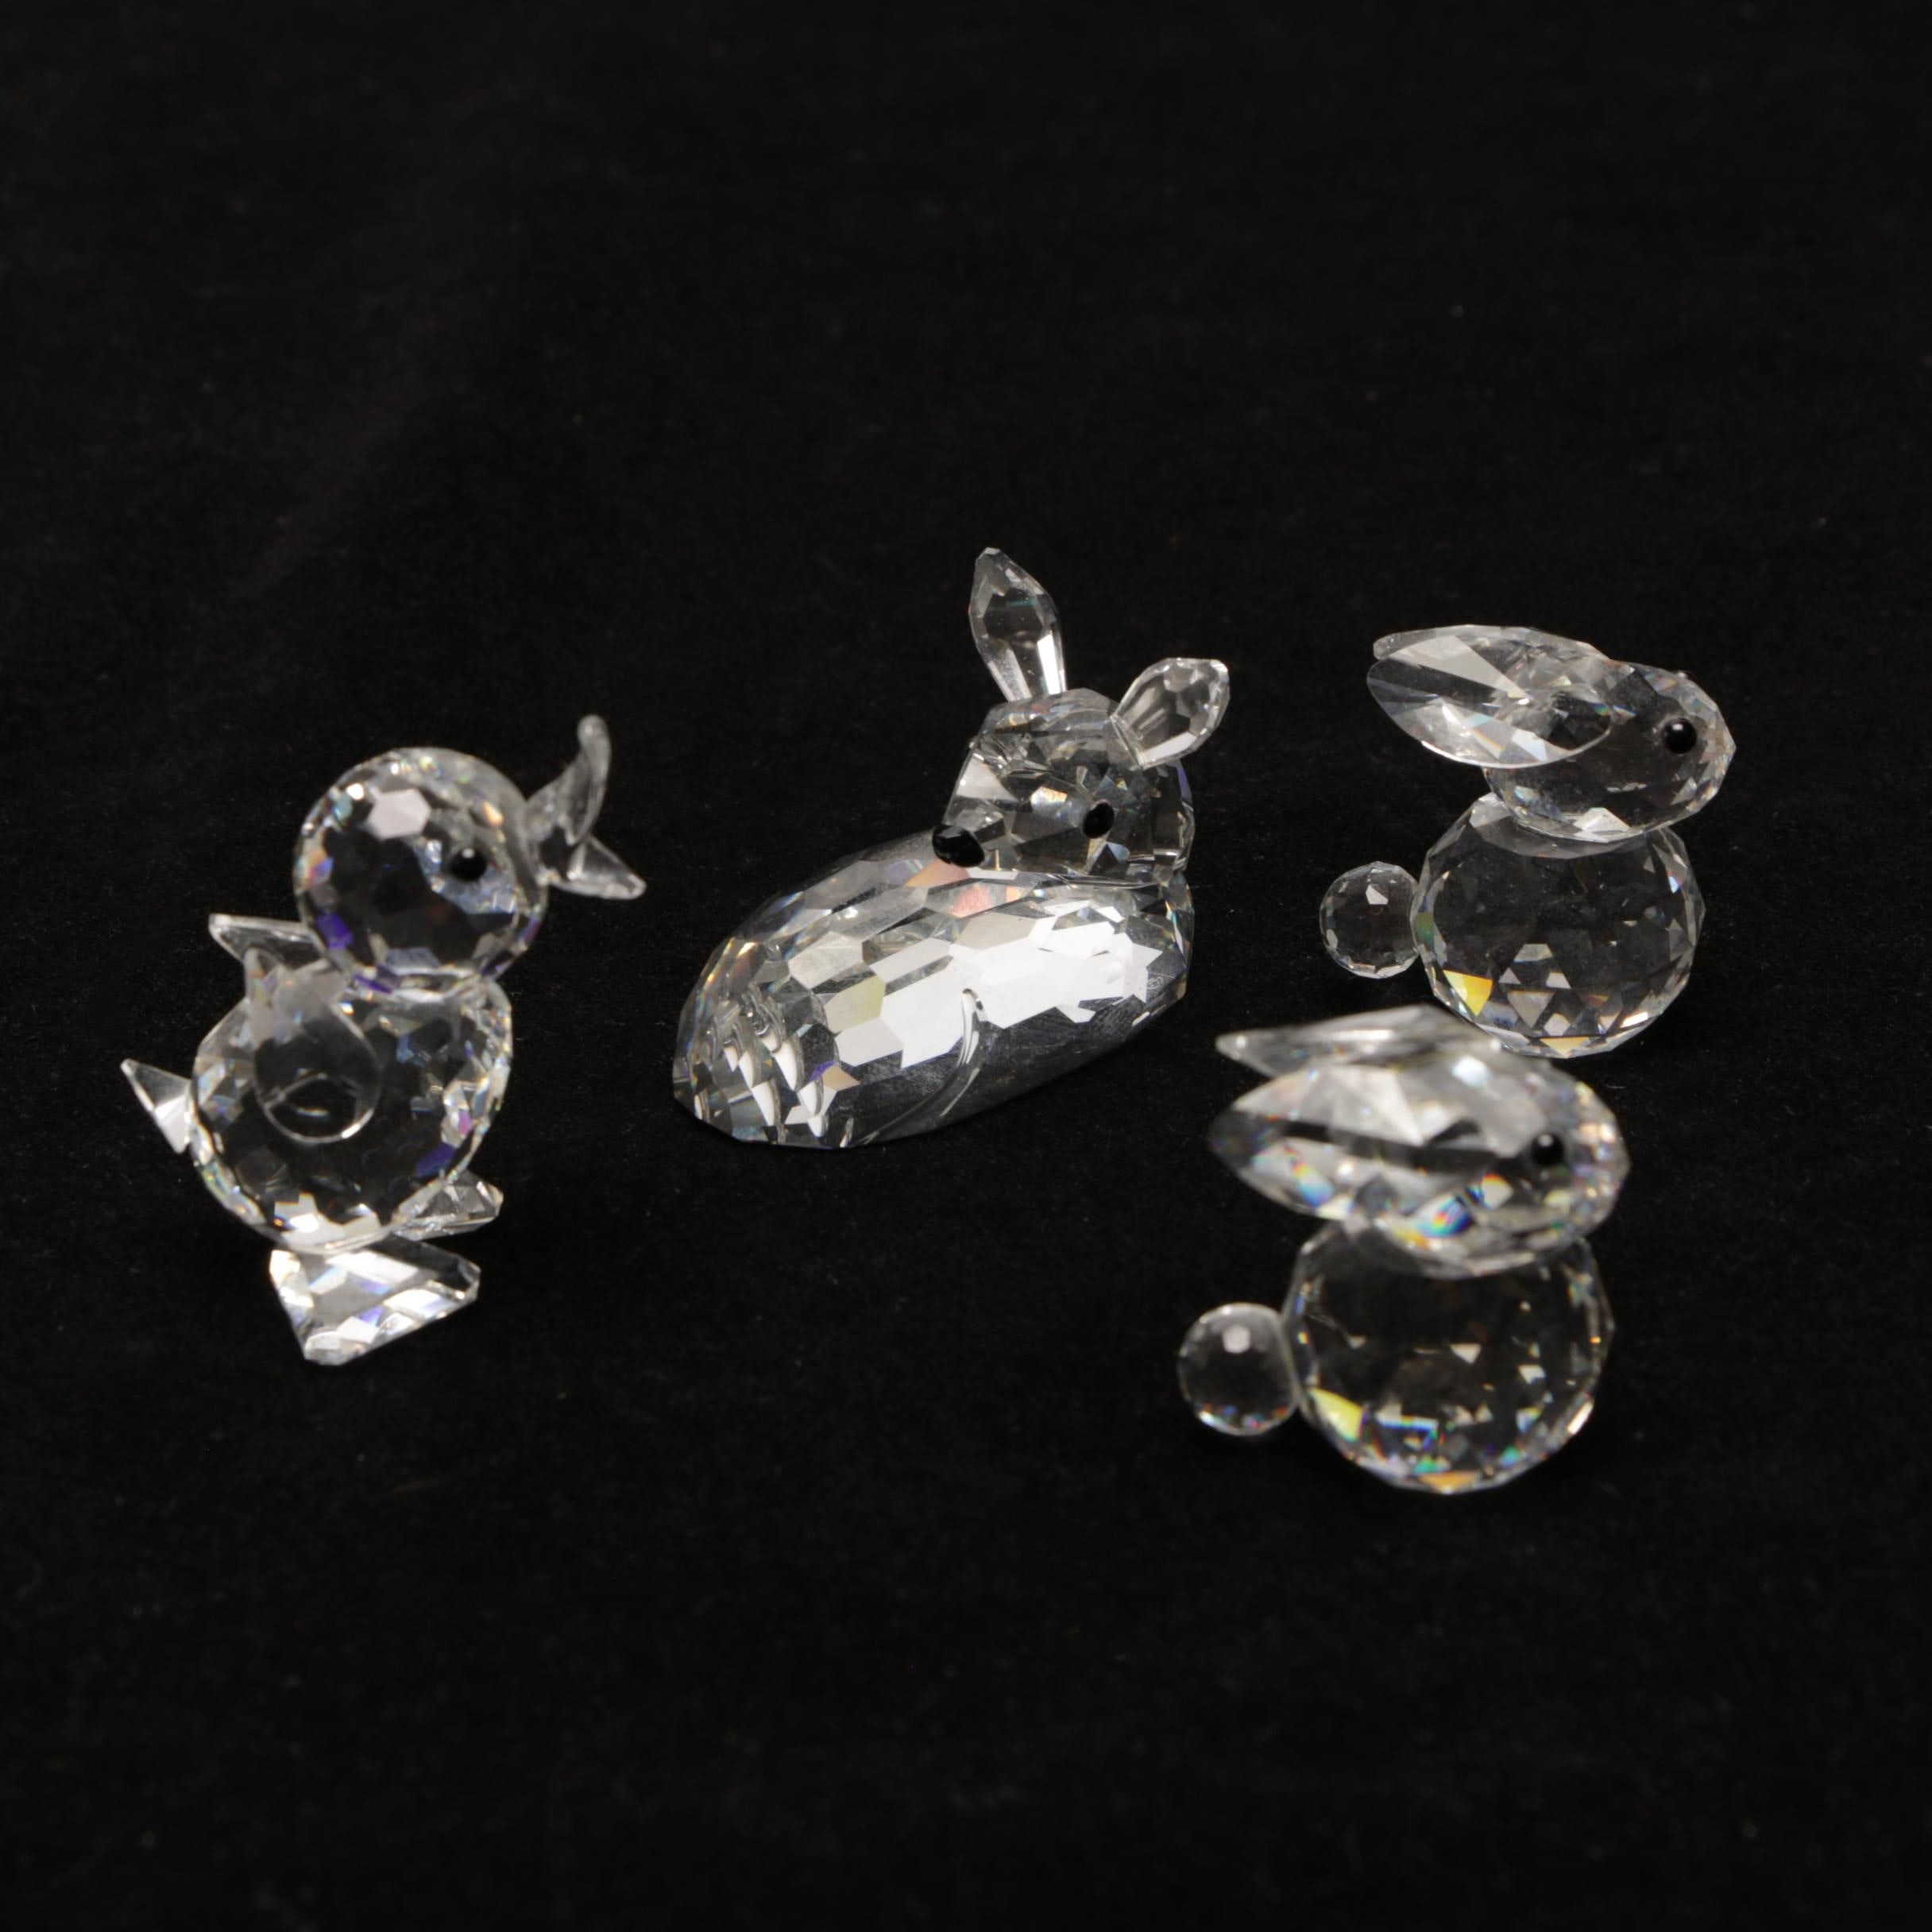 Swarovski Crystal Animal Miniatures